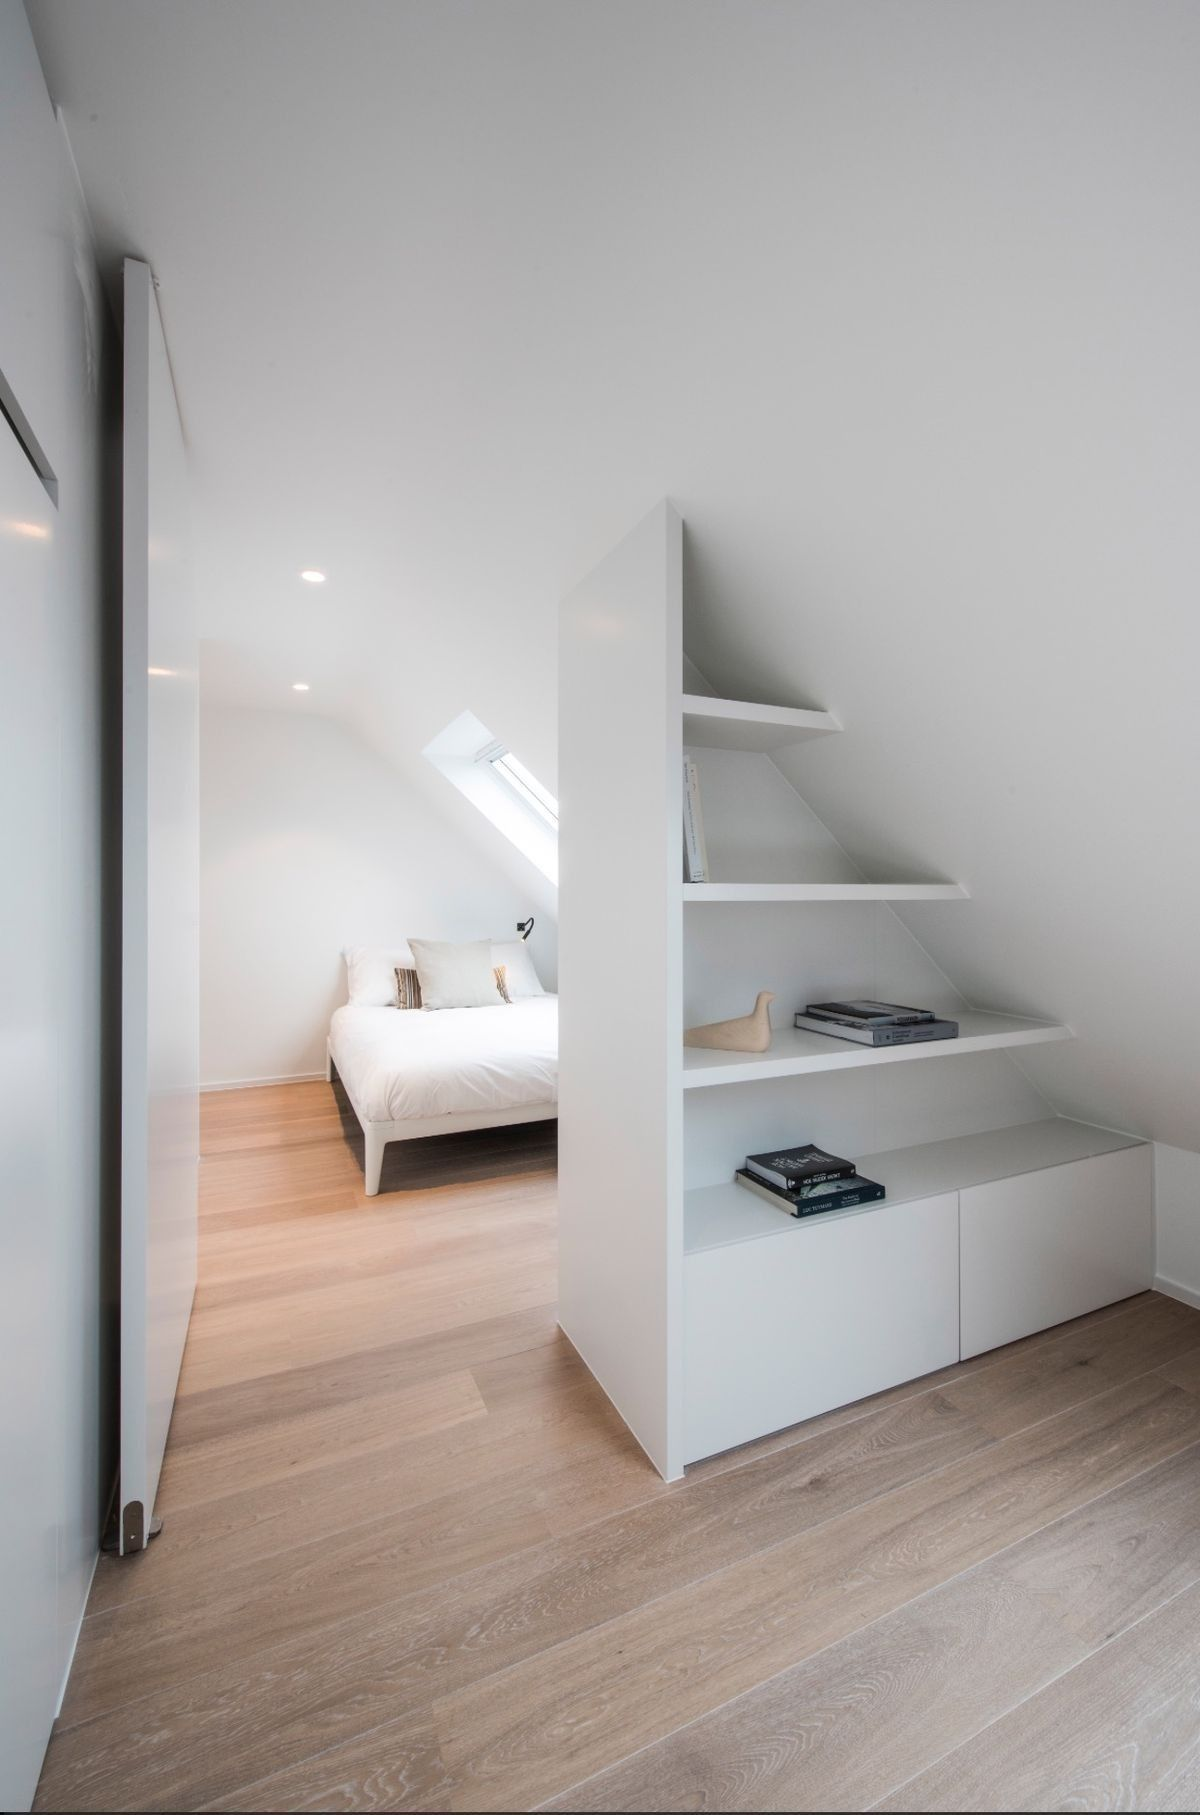 These Are The Attic Design Ideas You Have Been Looking For Attic